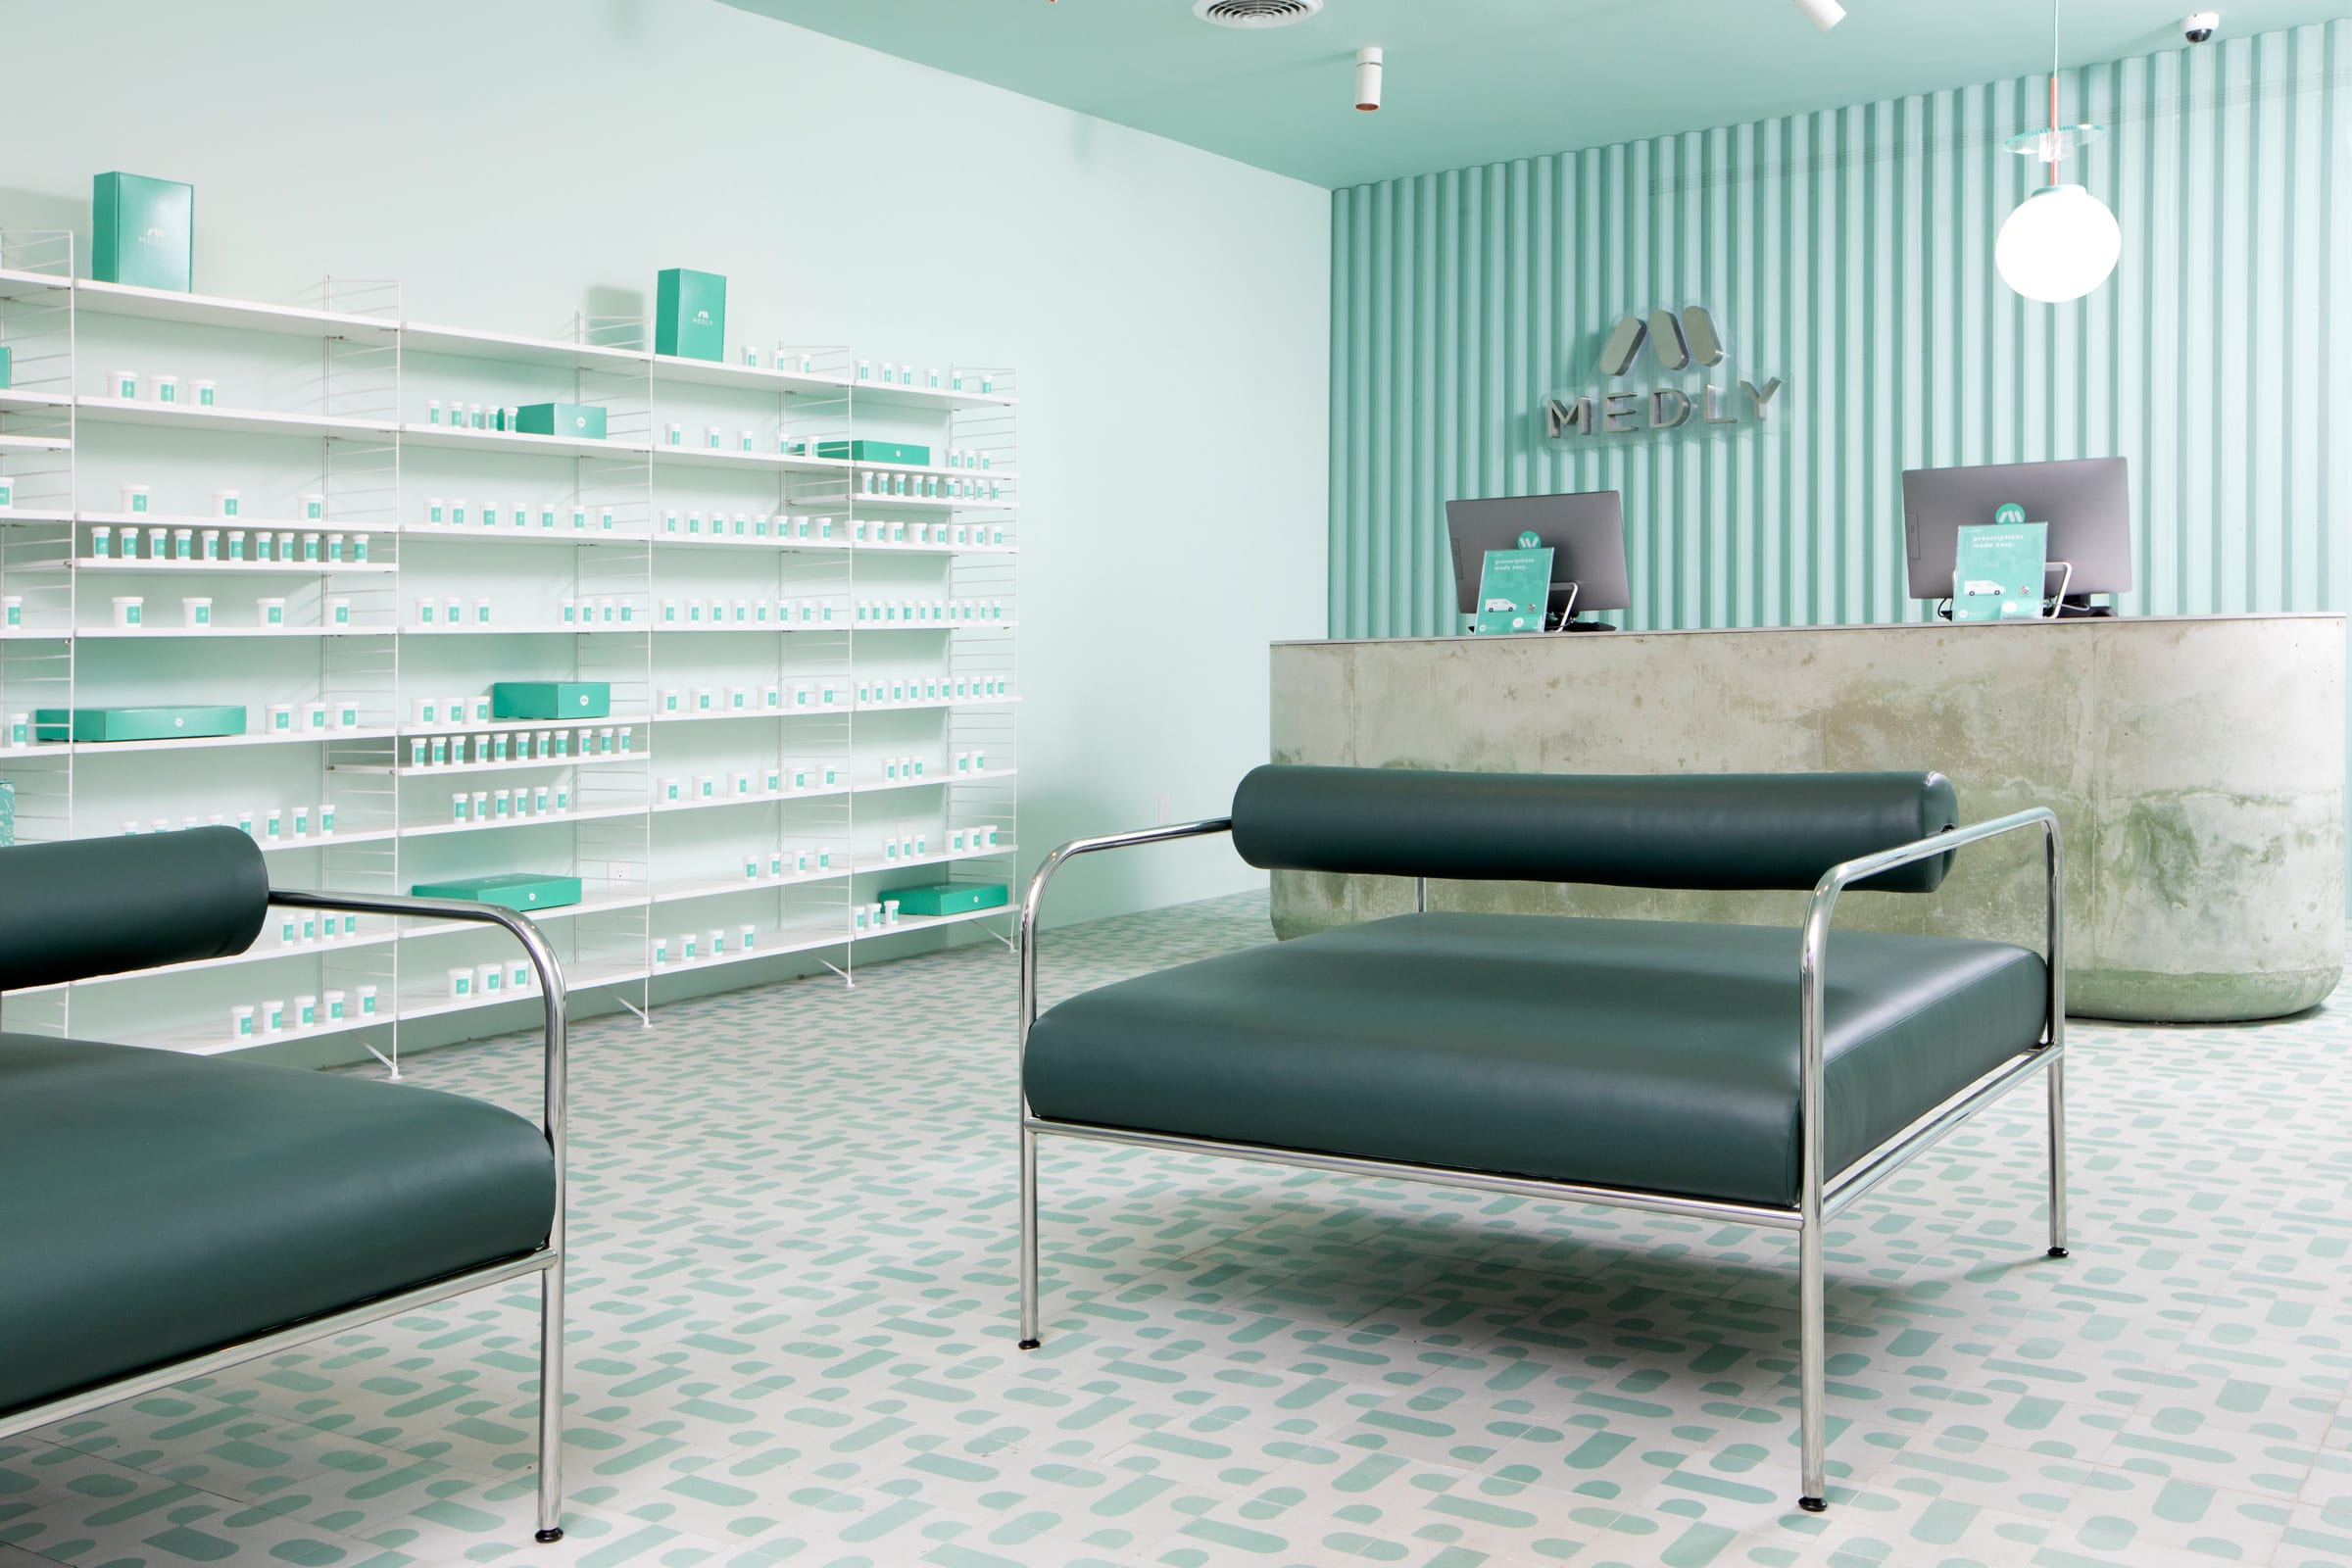 SERGIO MANNINO STUDIO · Medly Pharmacy in New York · Divisare